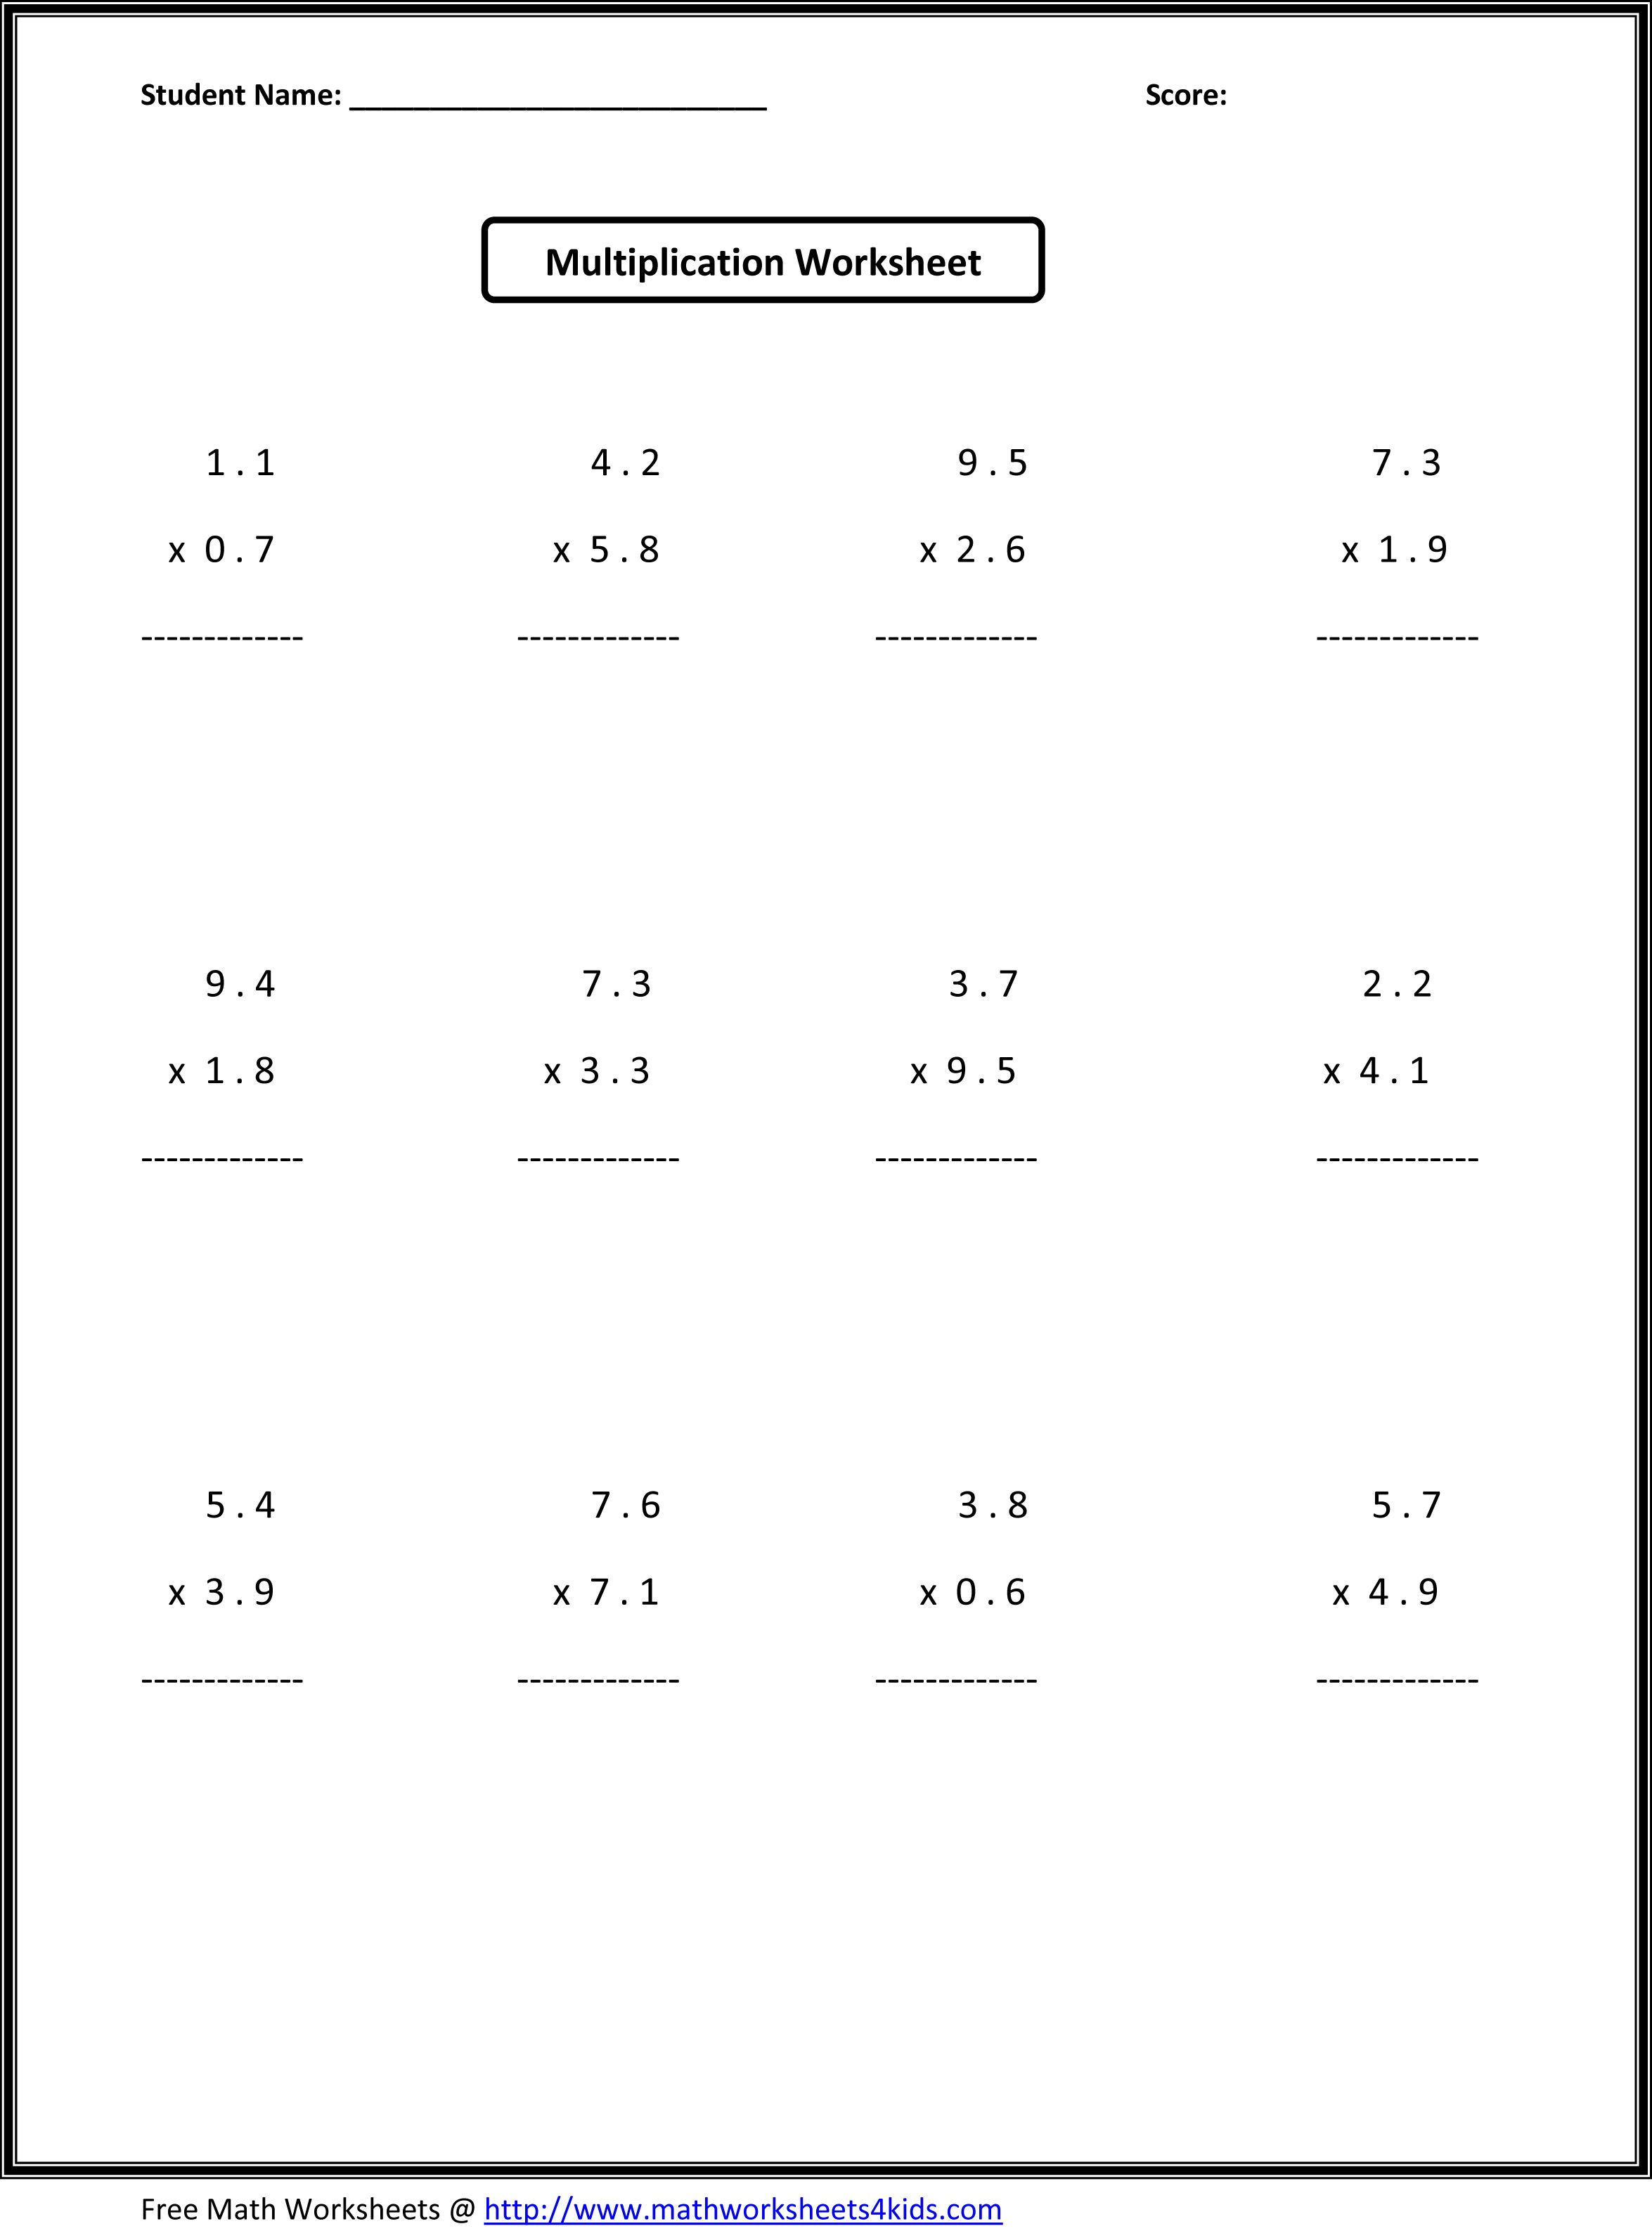 Printables Math Worksheet 7th Grade 7th grade algebra worksheets math places value absolute based on basic math